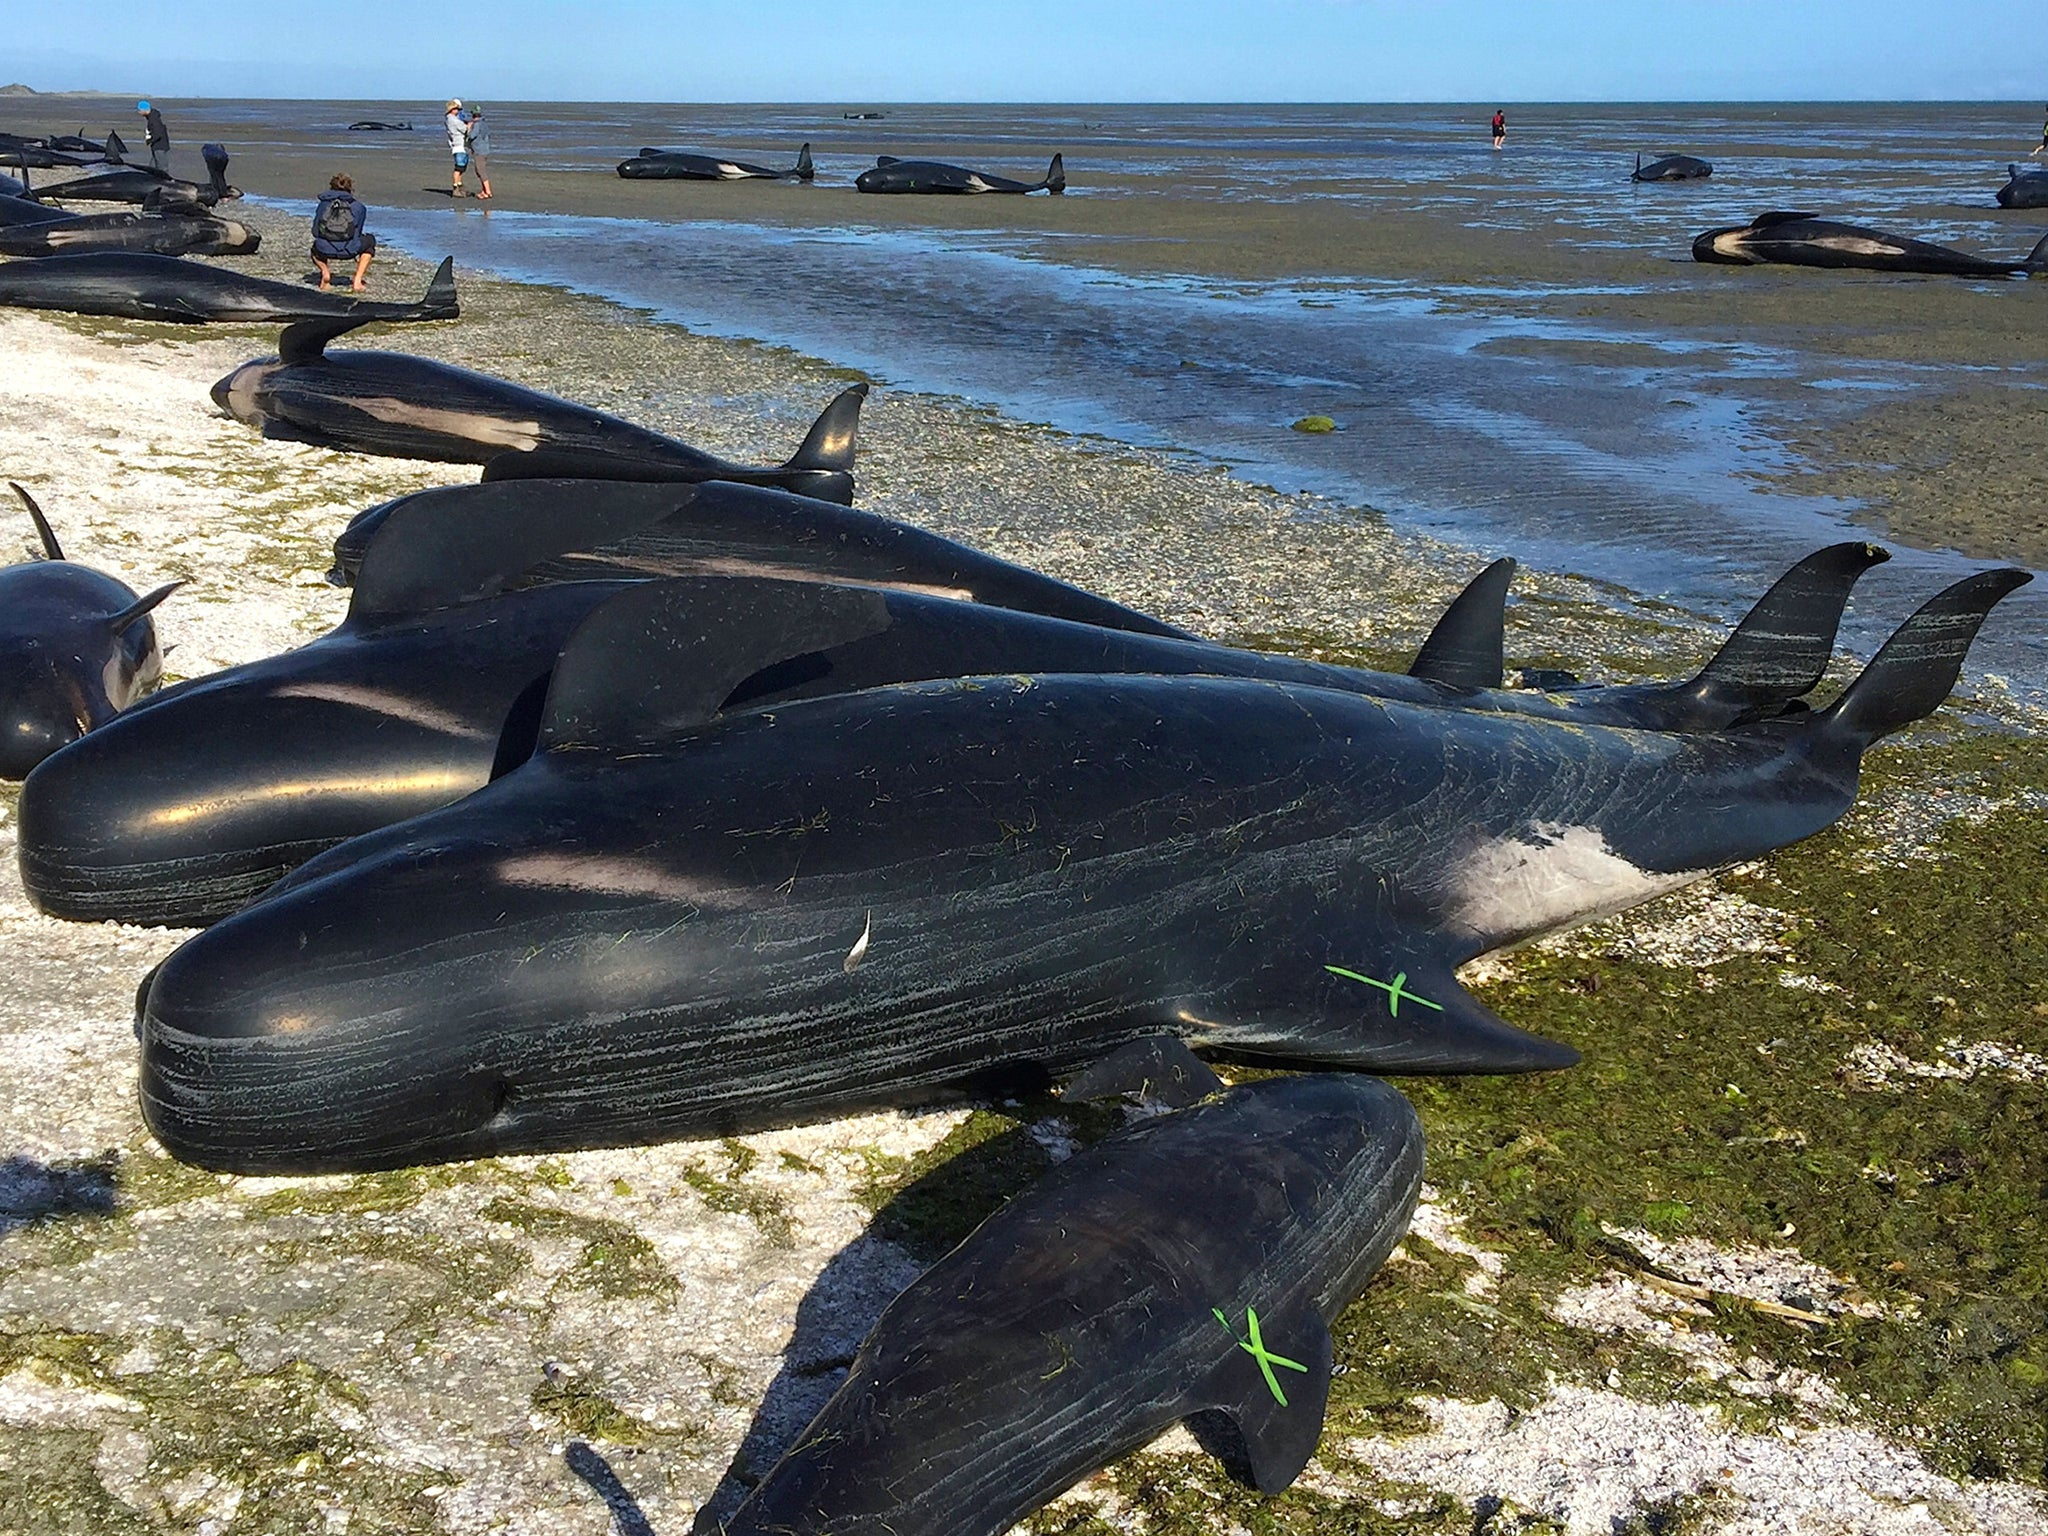 Rescue Efforts Underway As Hundreds Of Whales Stranded On Beach In New  Zealand | The Independent